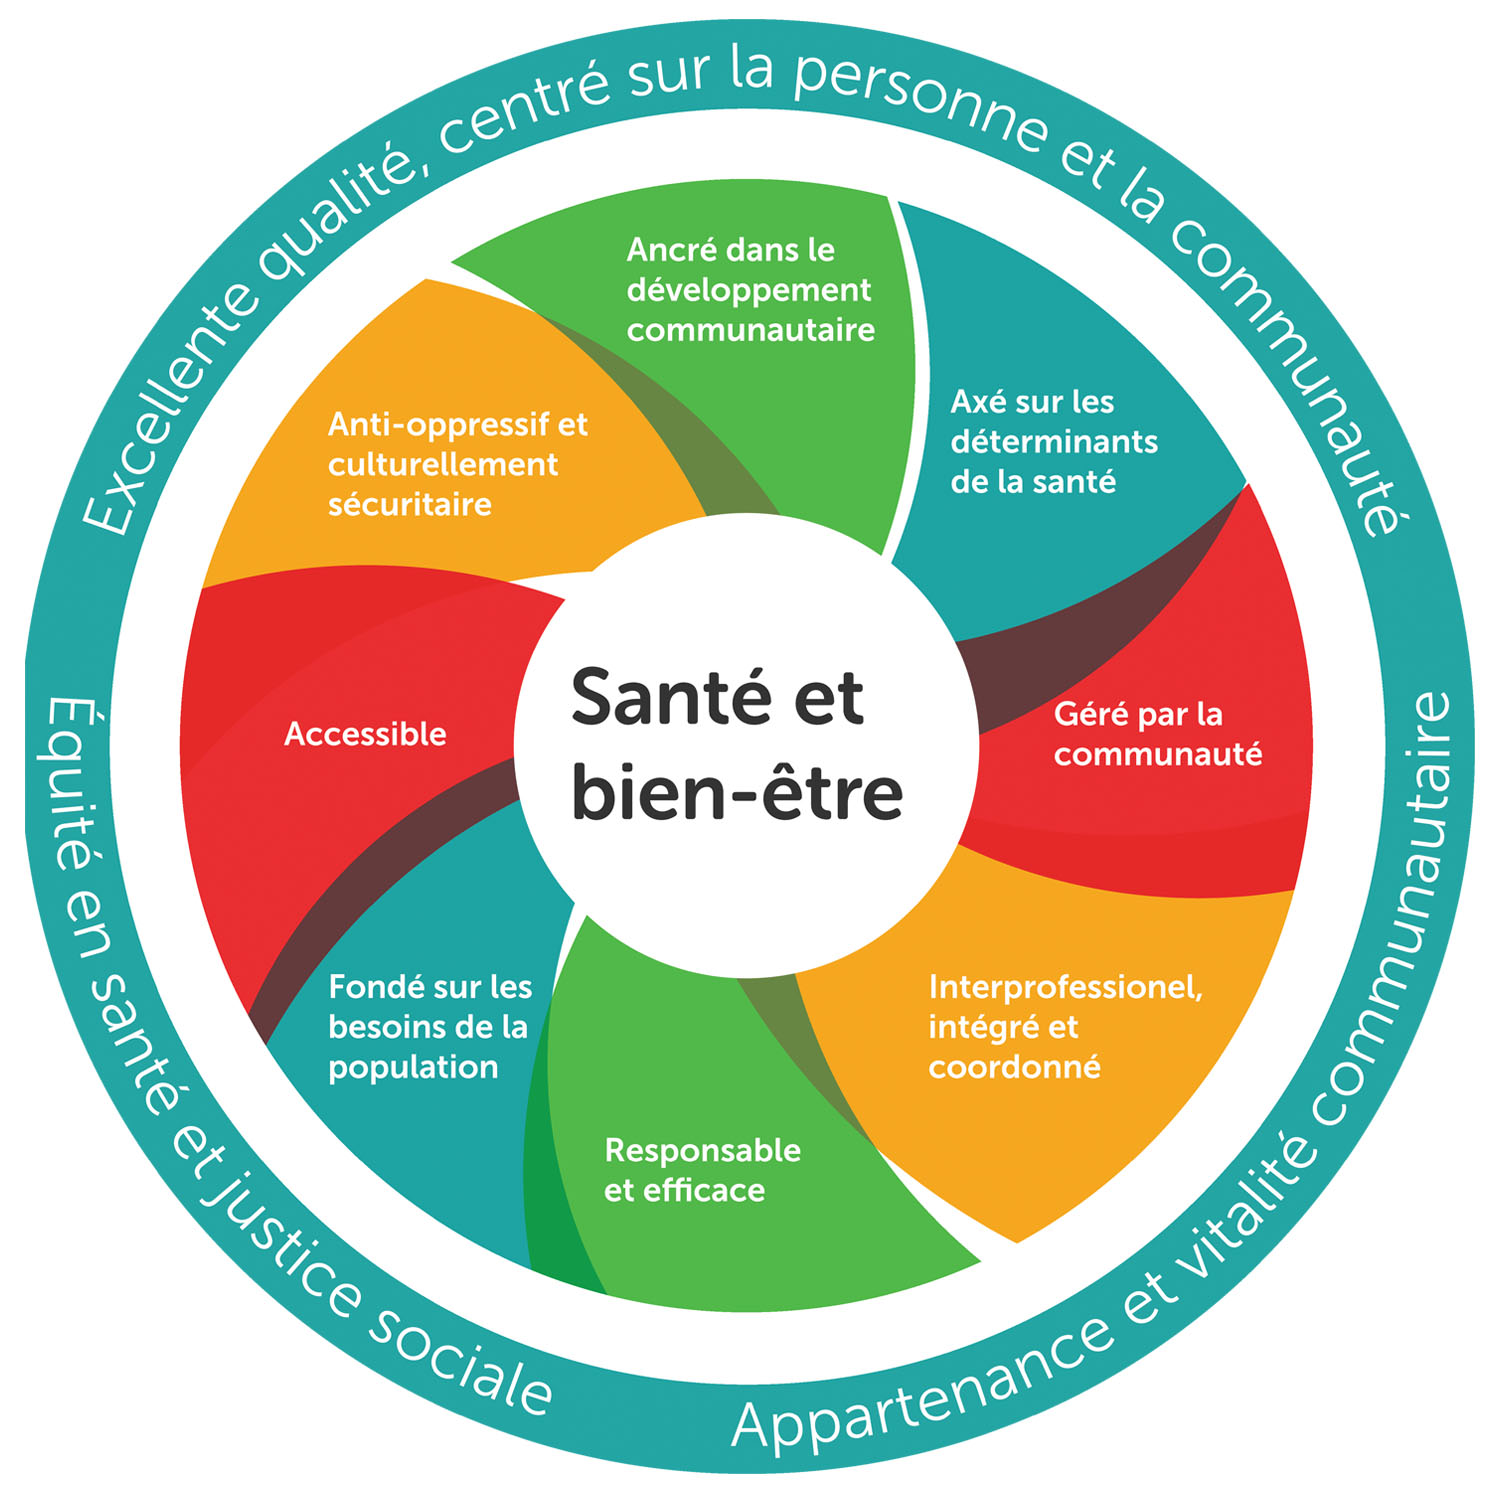 Image of the Model of Health and Wellbeing (French)